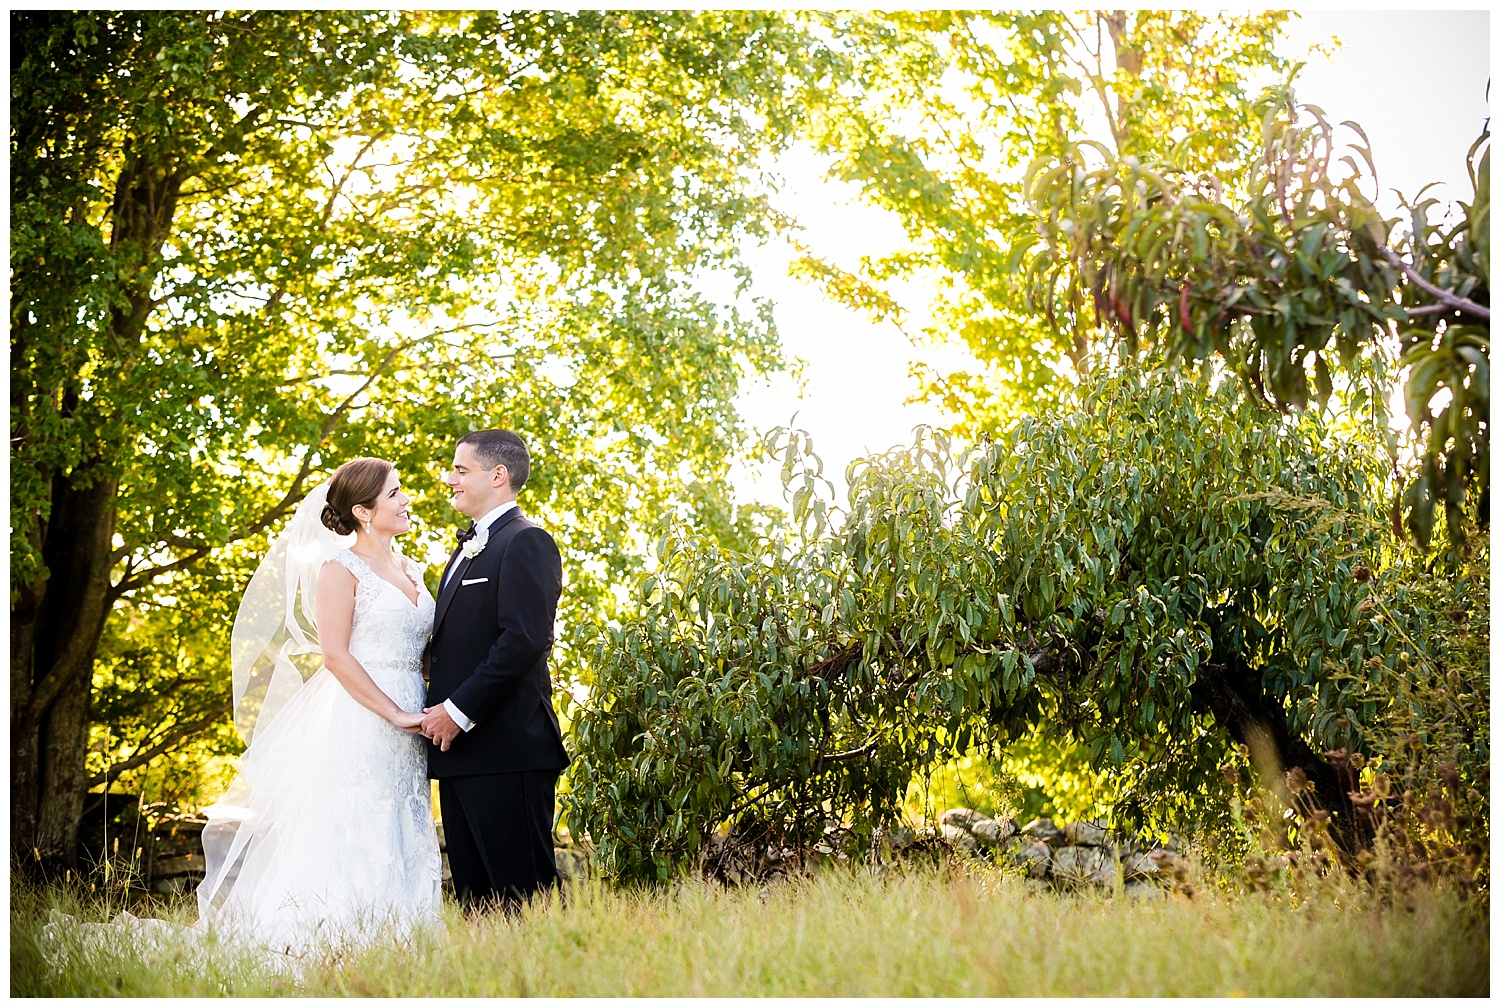 LeeAnn & Ryan – Brookstone Park Wedding